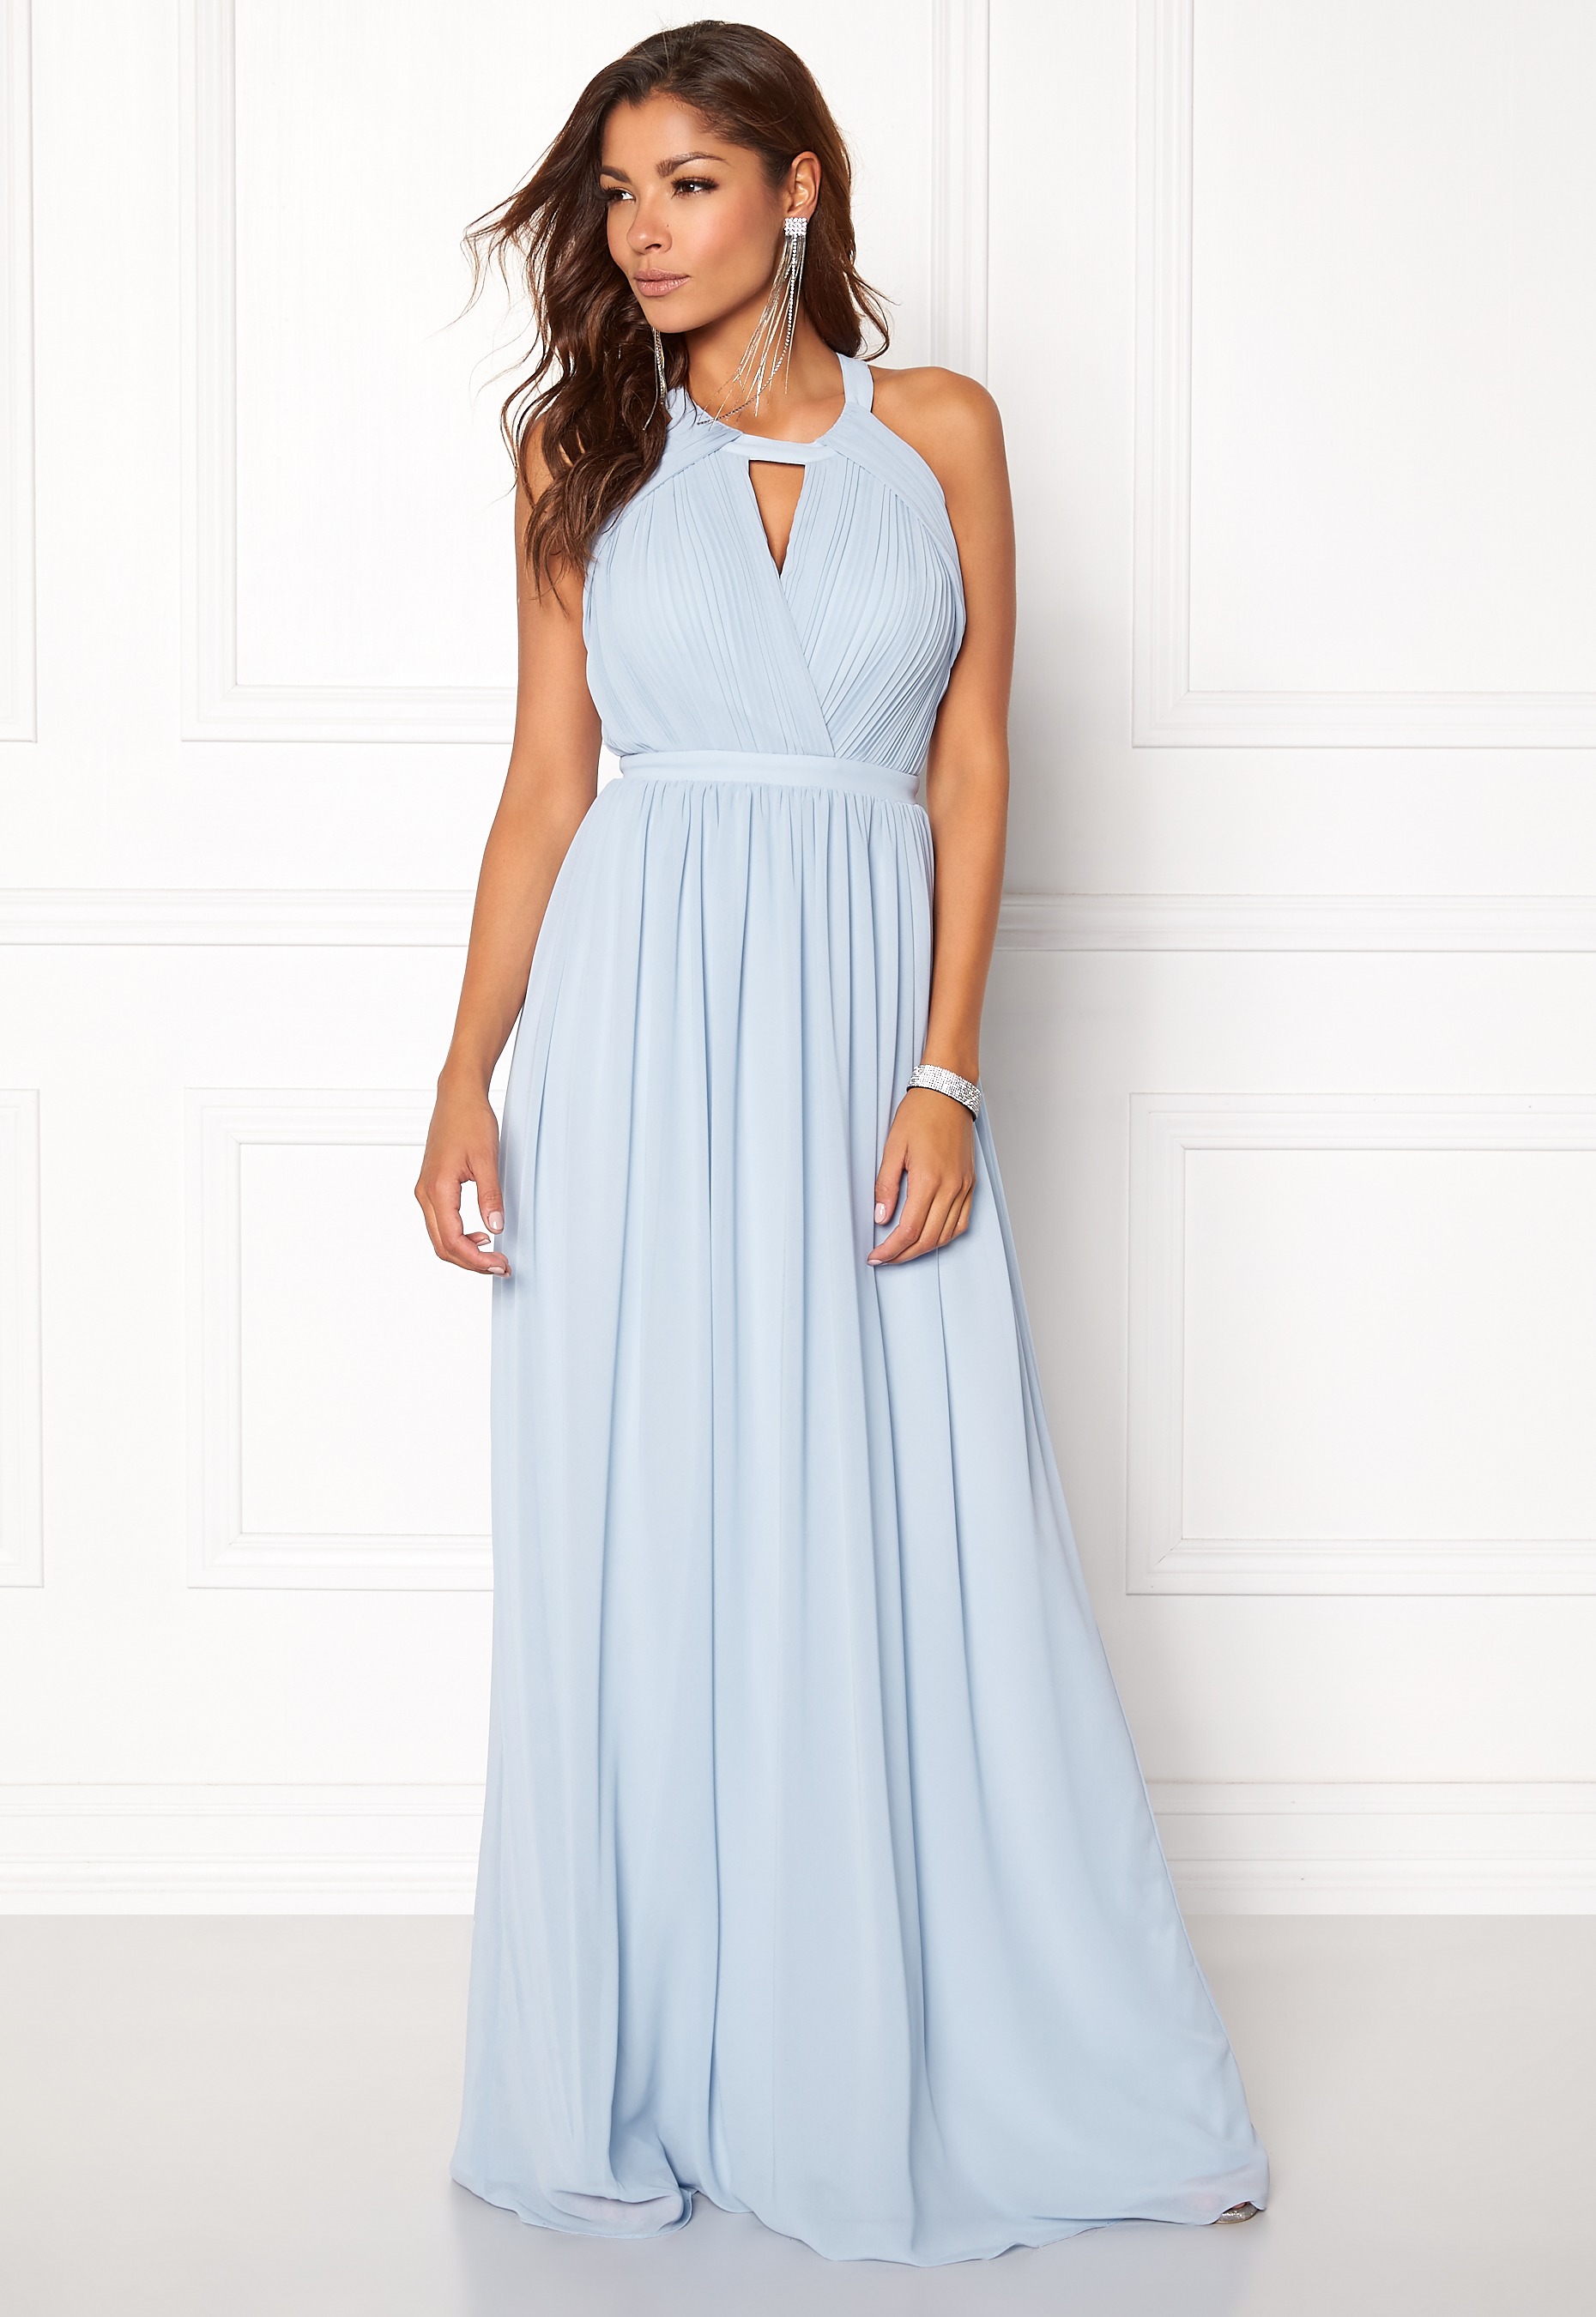 0de3df60f5 Chiara Forthi Athena Gown Light blue - Bubbleroom